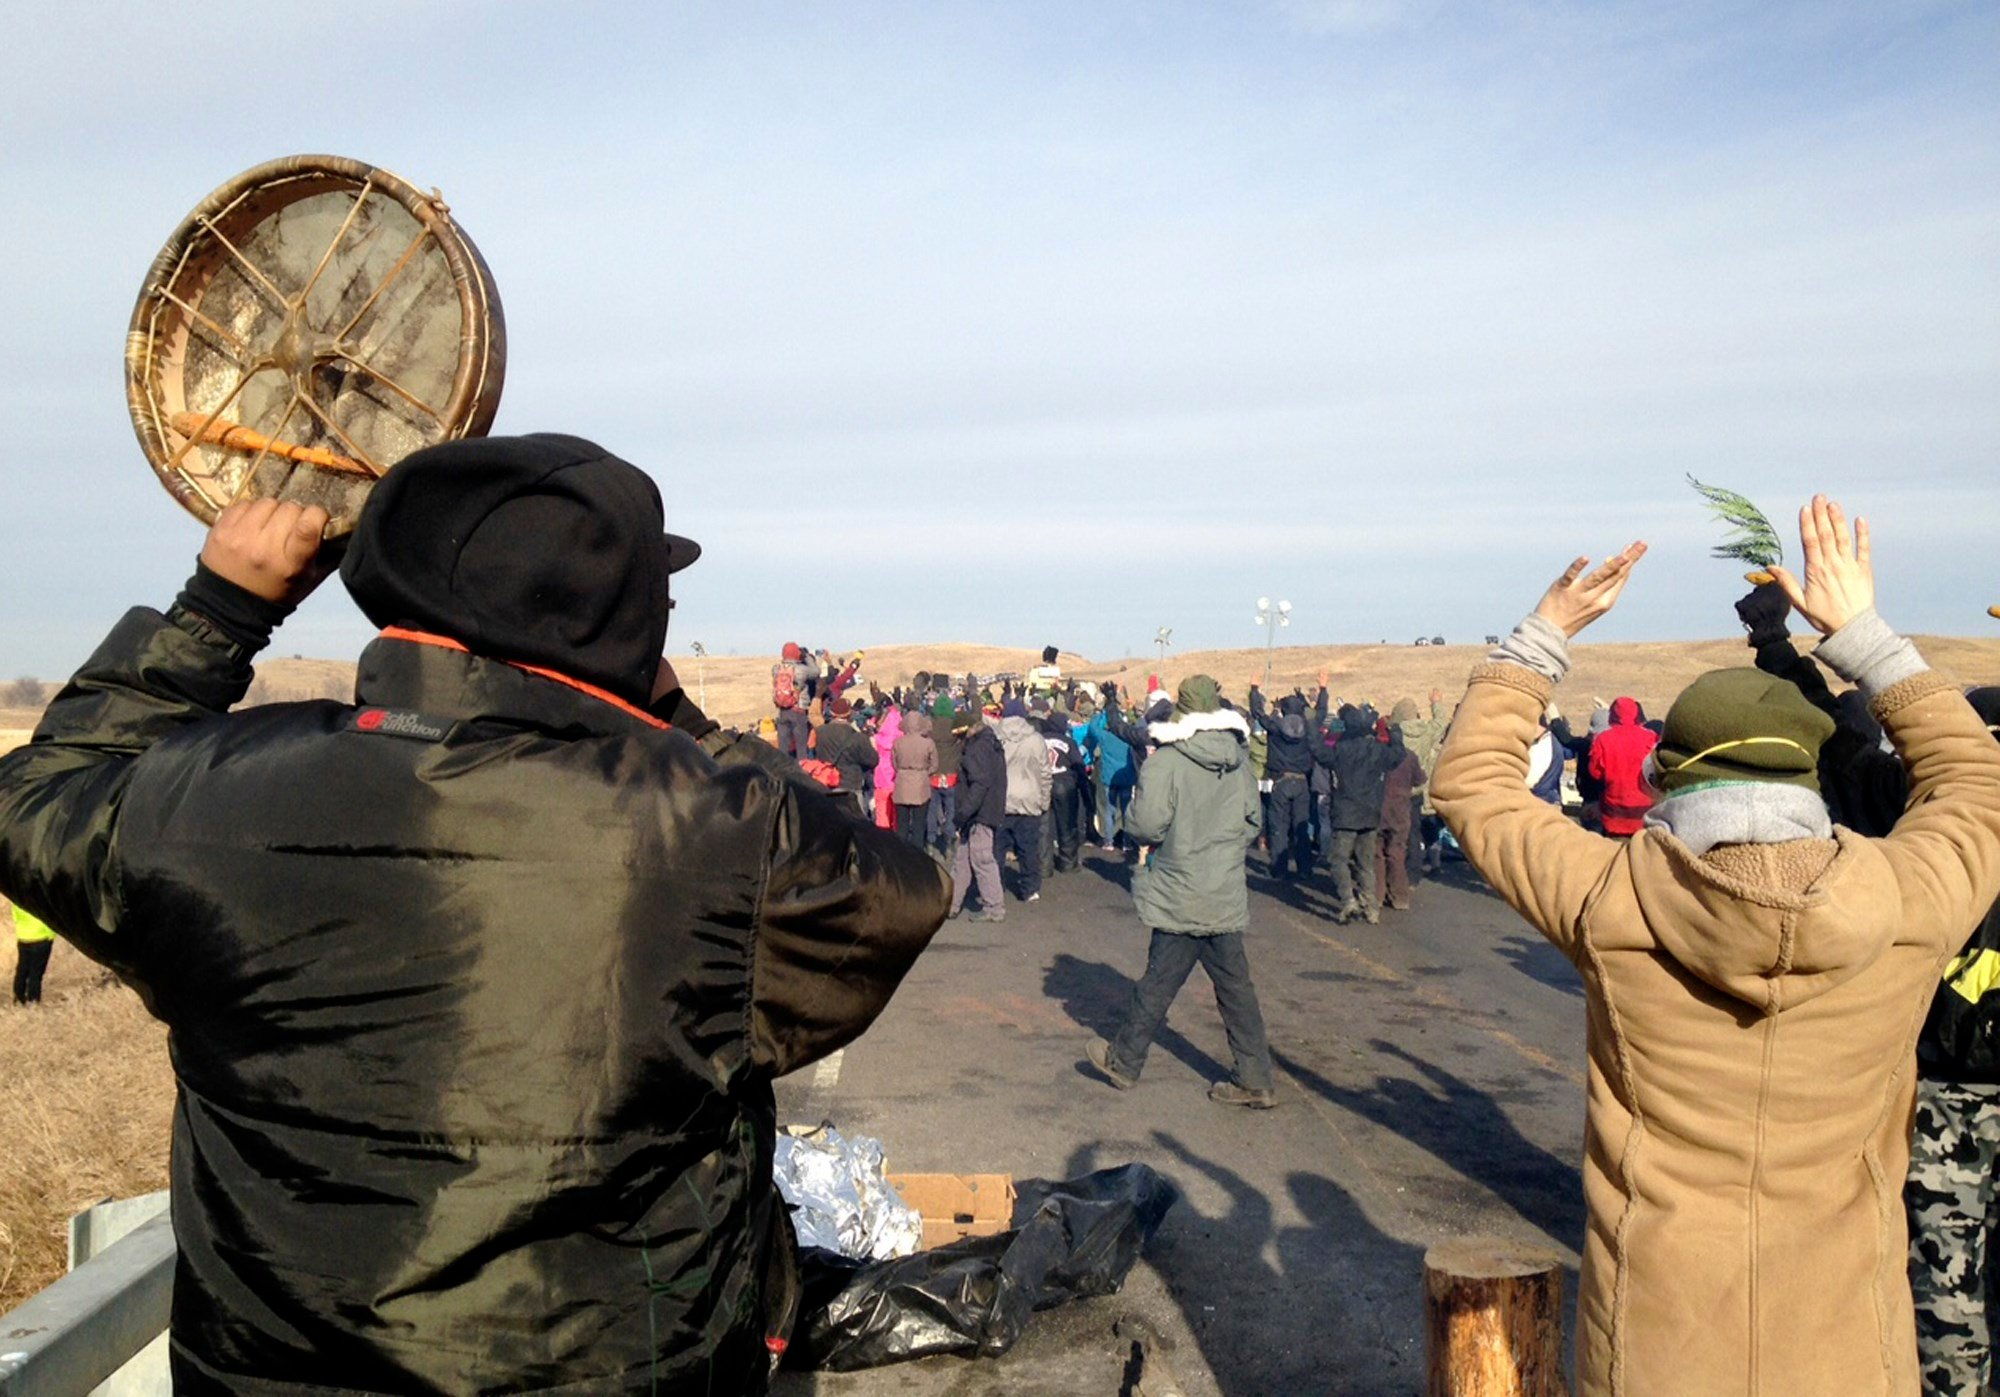 Protesters against the Dakota Access oil pipeline congregate Monday, Nov. 21, 2016, near Cannon Ball, N.D., on a long-closed bridge on a state highway near their camp in southern North Dakota.